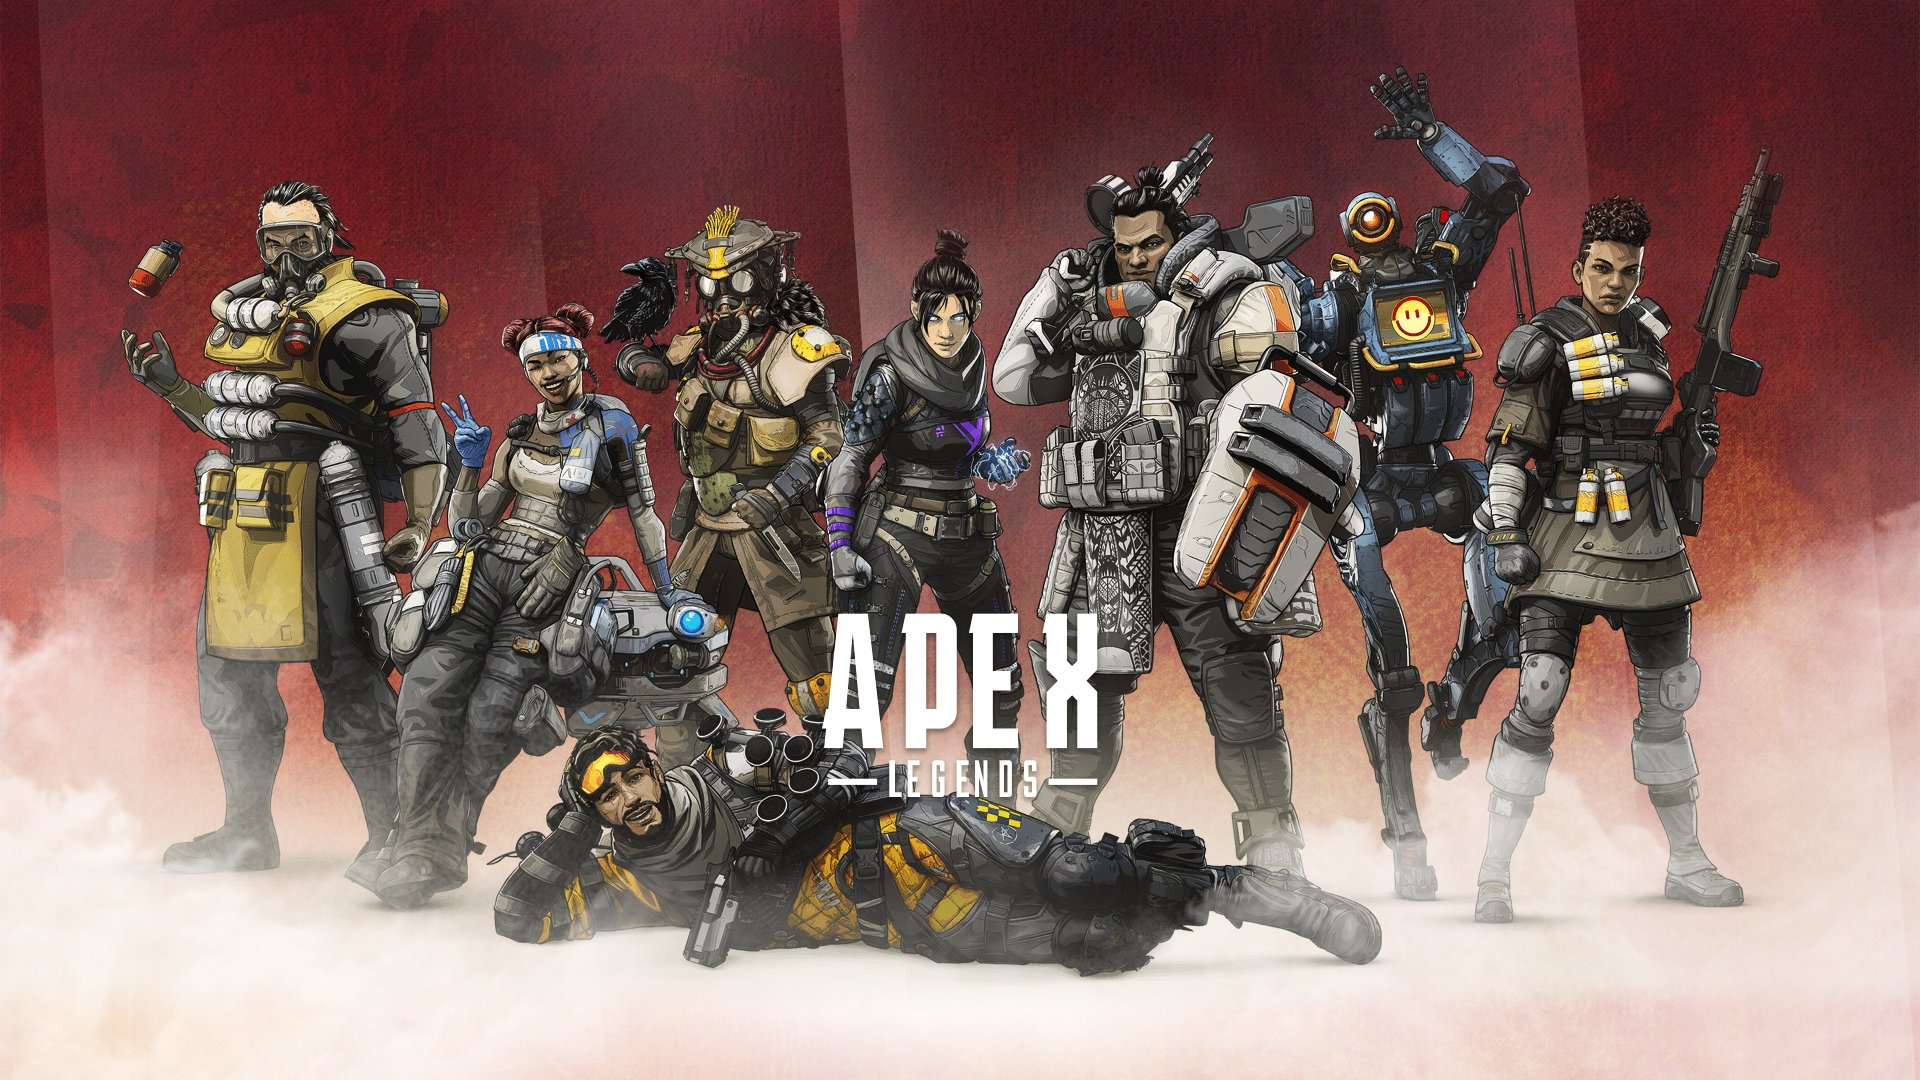 Apex Legends Season 2 Includes Ranked Mode, New Weapon, New Legend Wattson